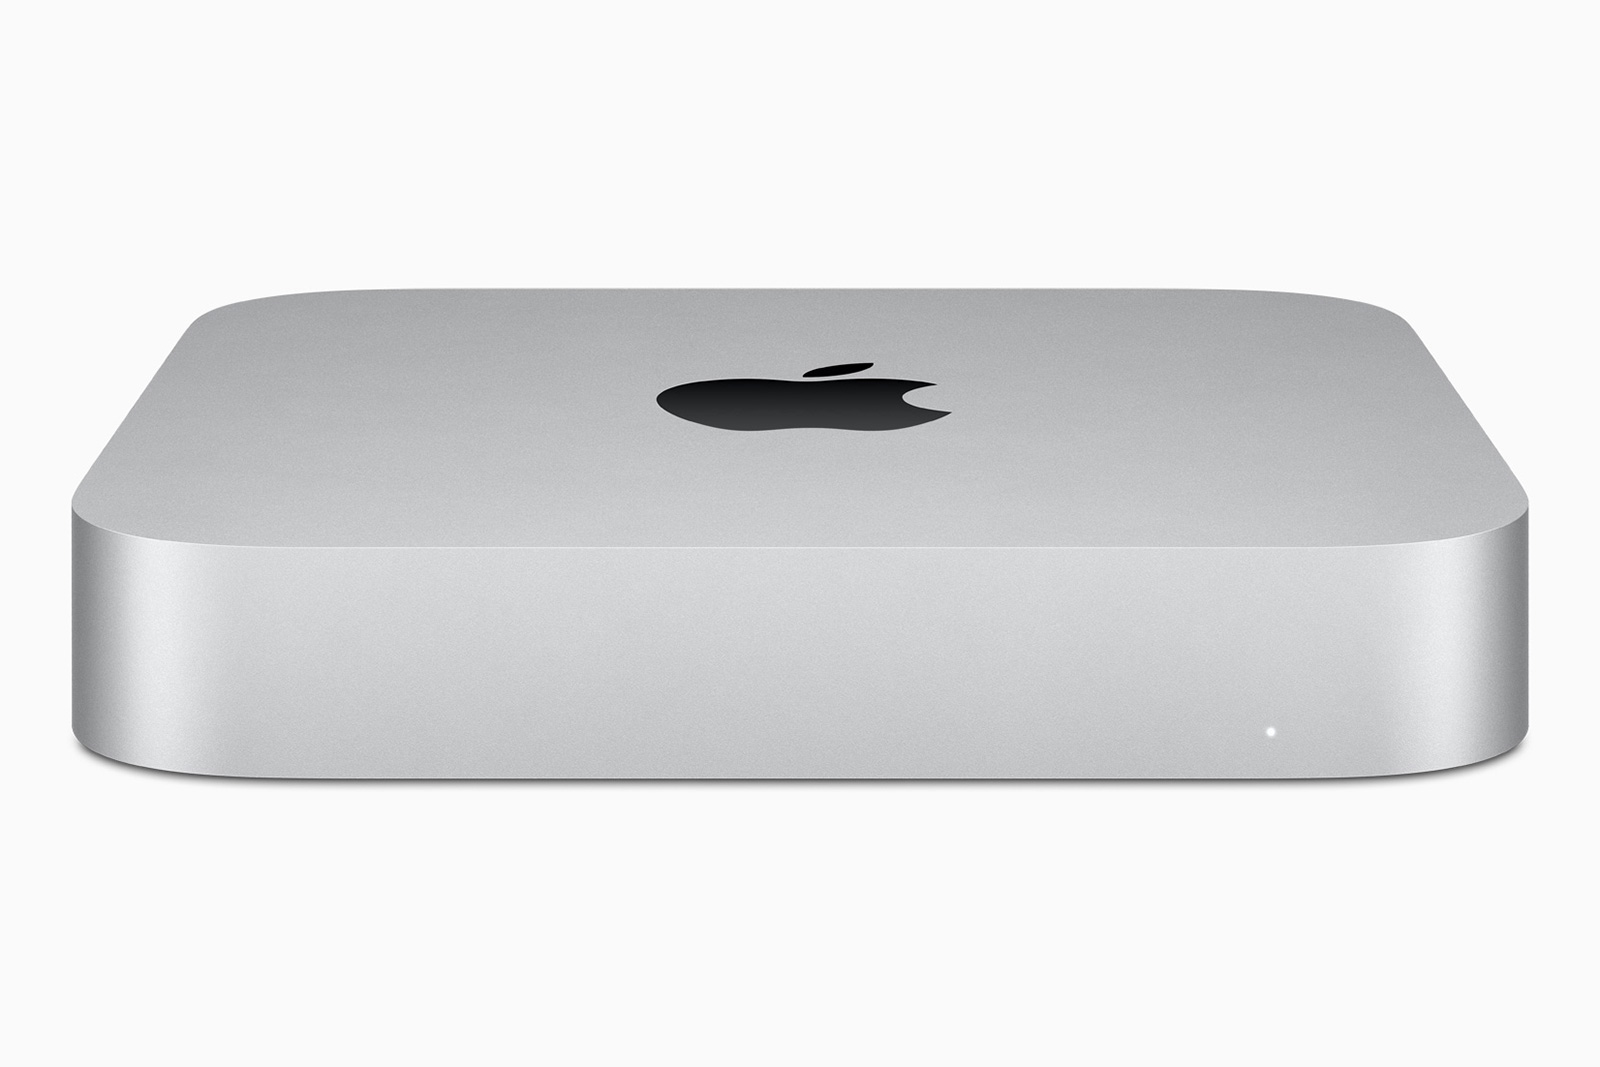 Apple's 512GB Mac Mini M1 returns to a record-low $800 at Amazon | Engadget